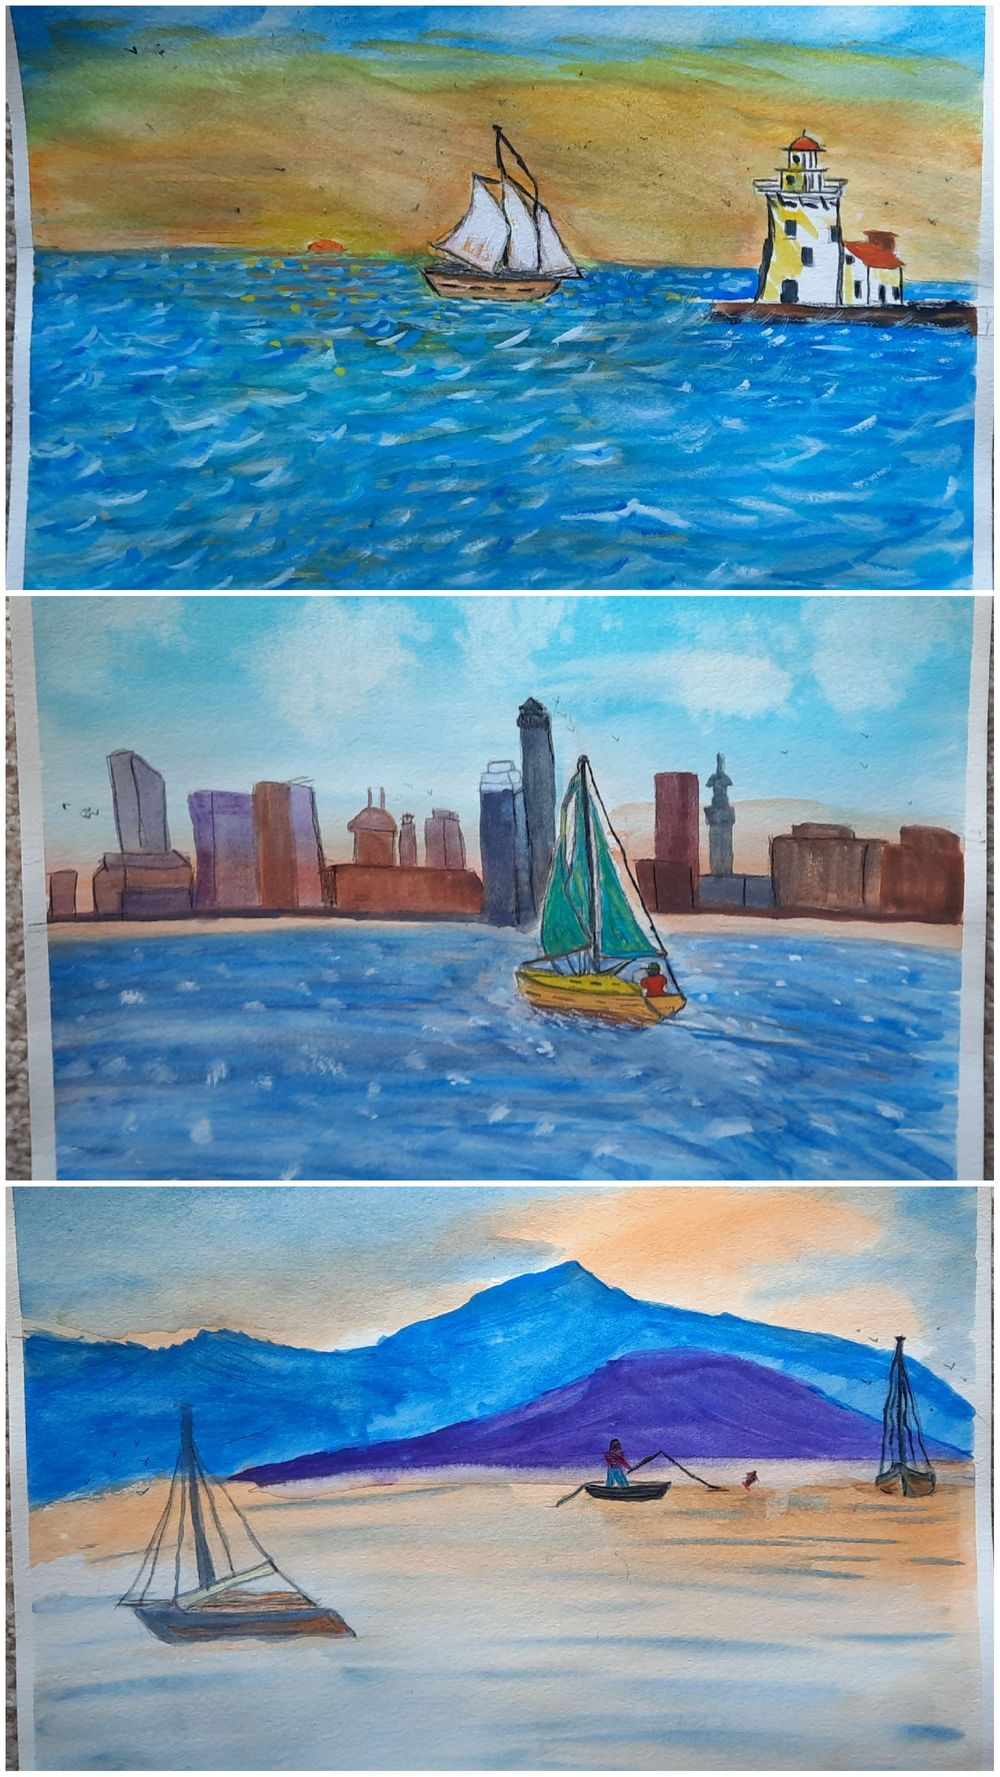 Boats - image 1 - student project